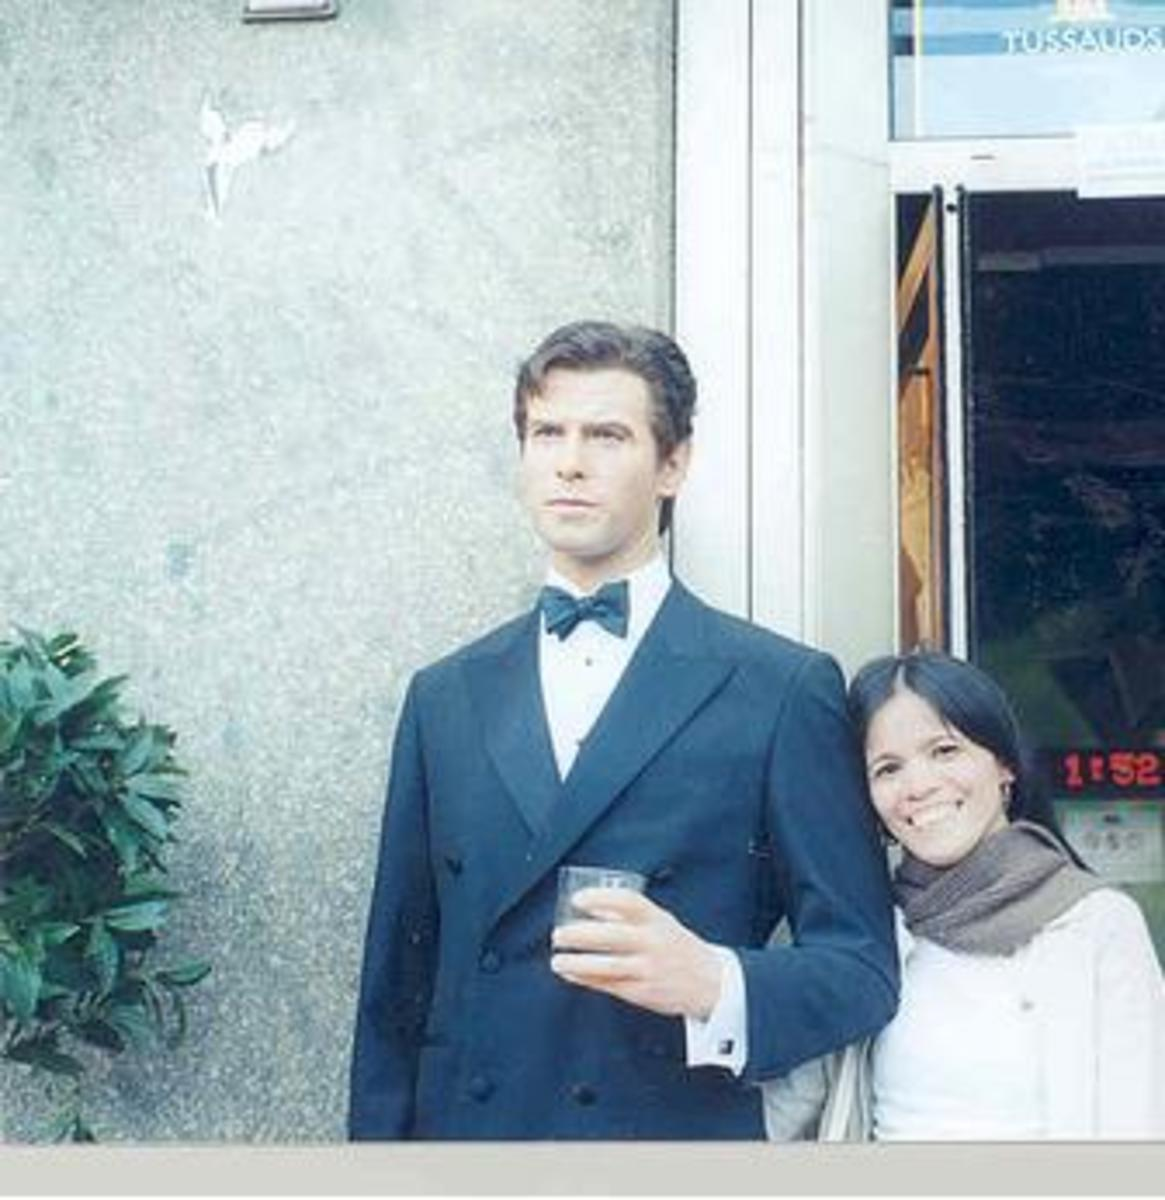 Me and Pierce Brosnan in Netherlands Madame Tussaud Wax Museum